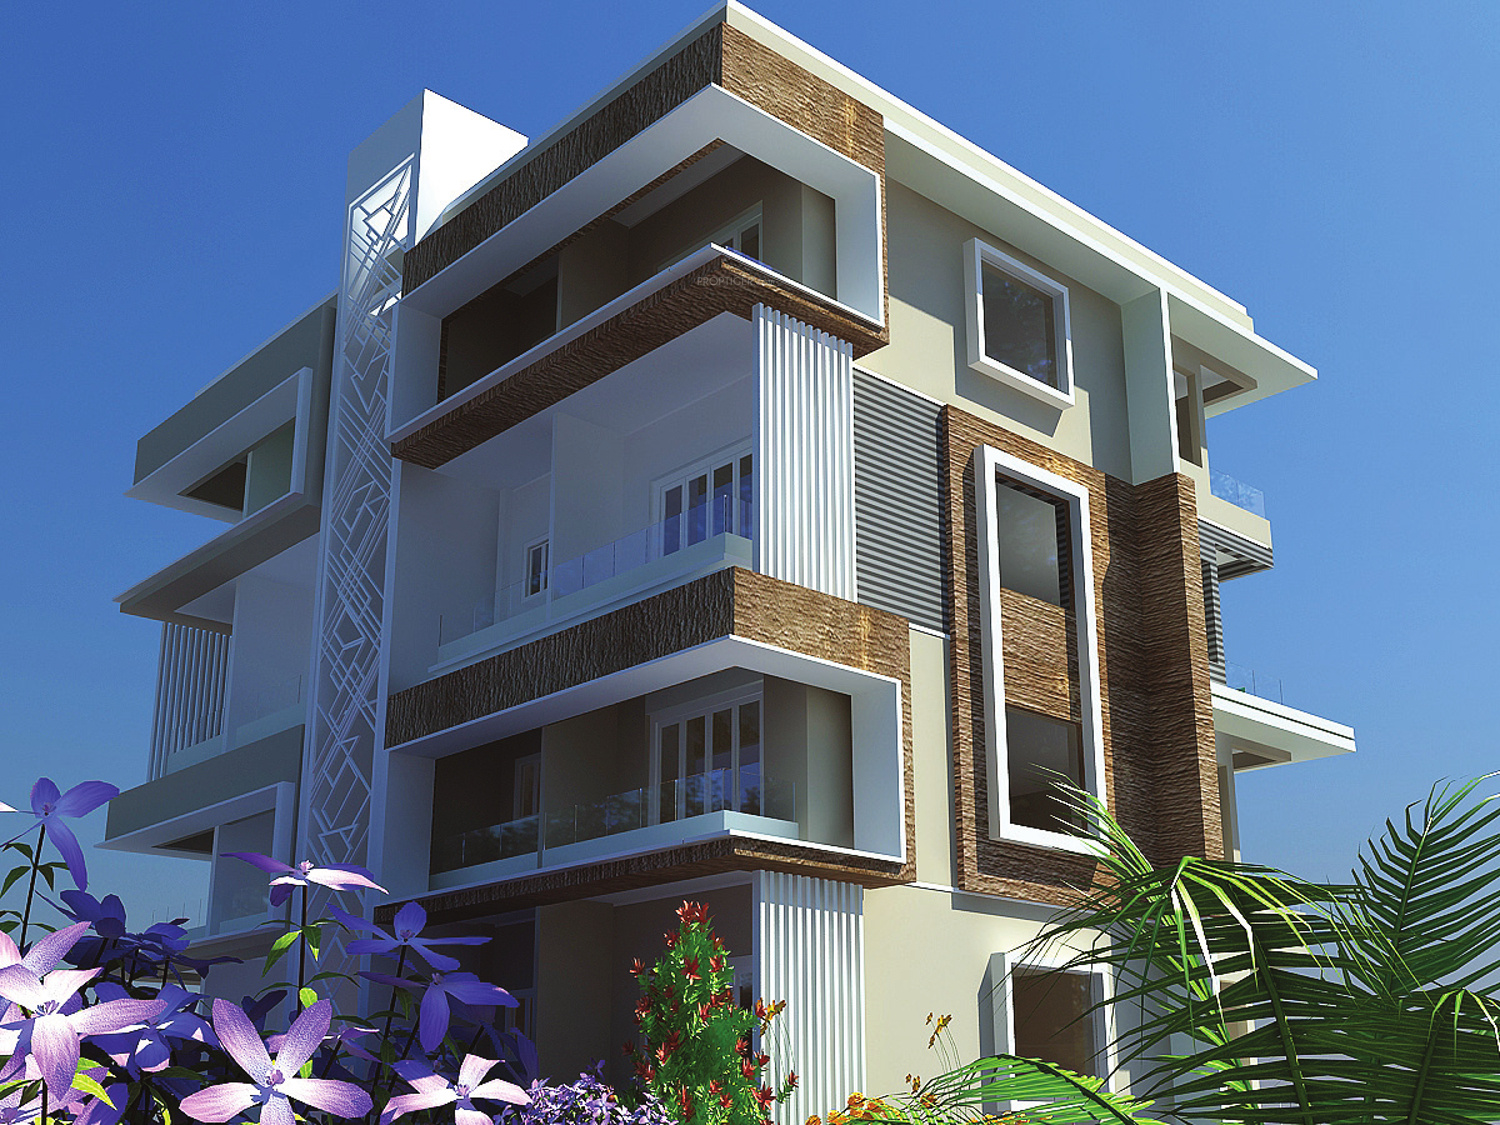 Elevation Stones Bangalore : Bhk cluster plan image sree reddy properties elite for